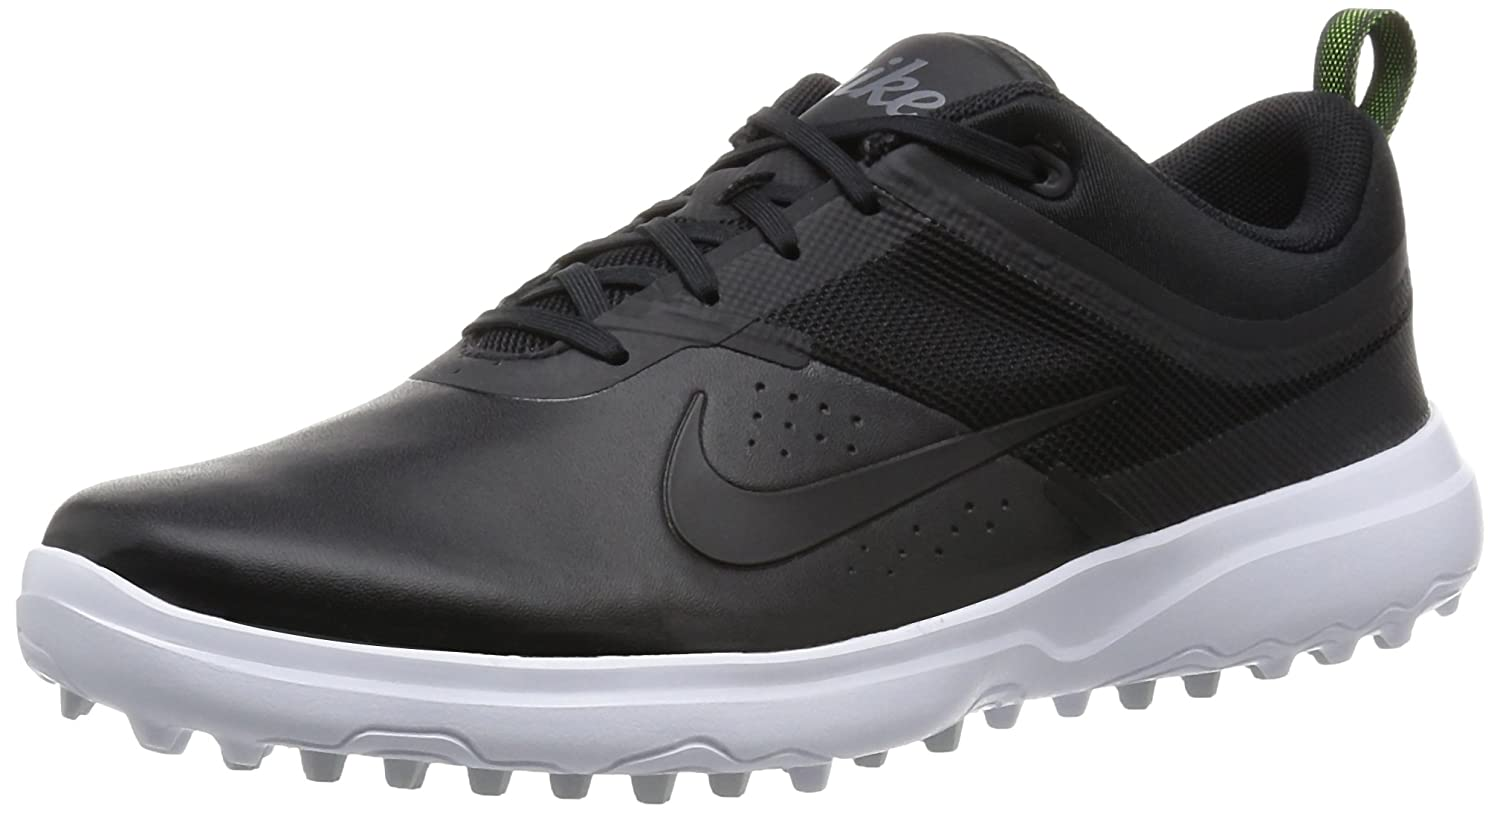 Nike Golf Ladies Akamai Shoes B014271CQ2 10 B(M) US|Black/White/Pure Platinum/Black